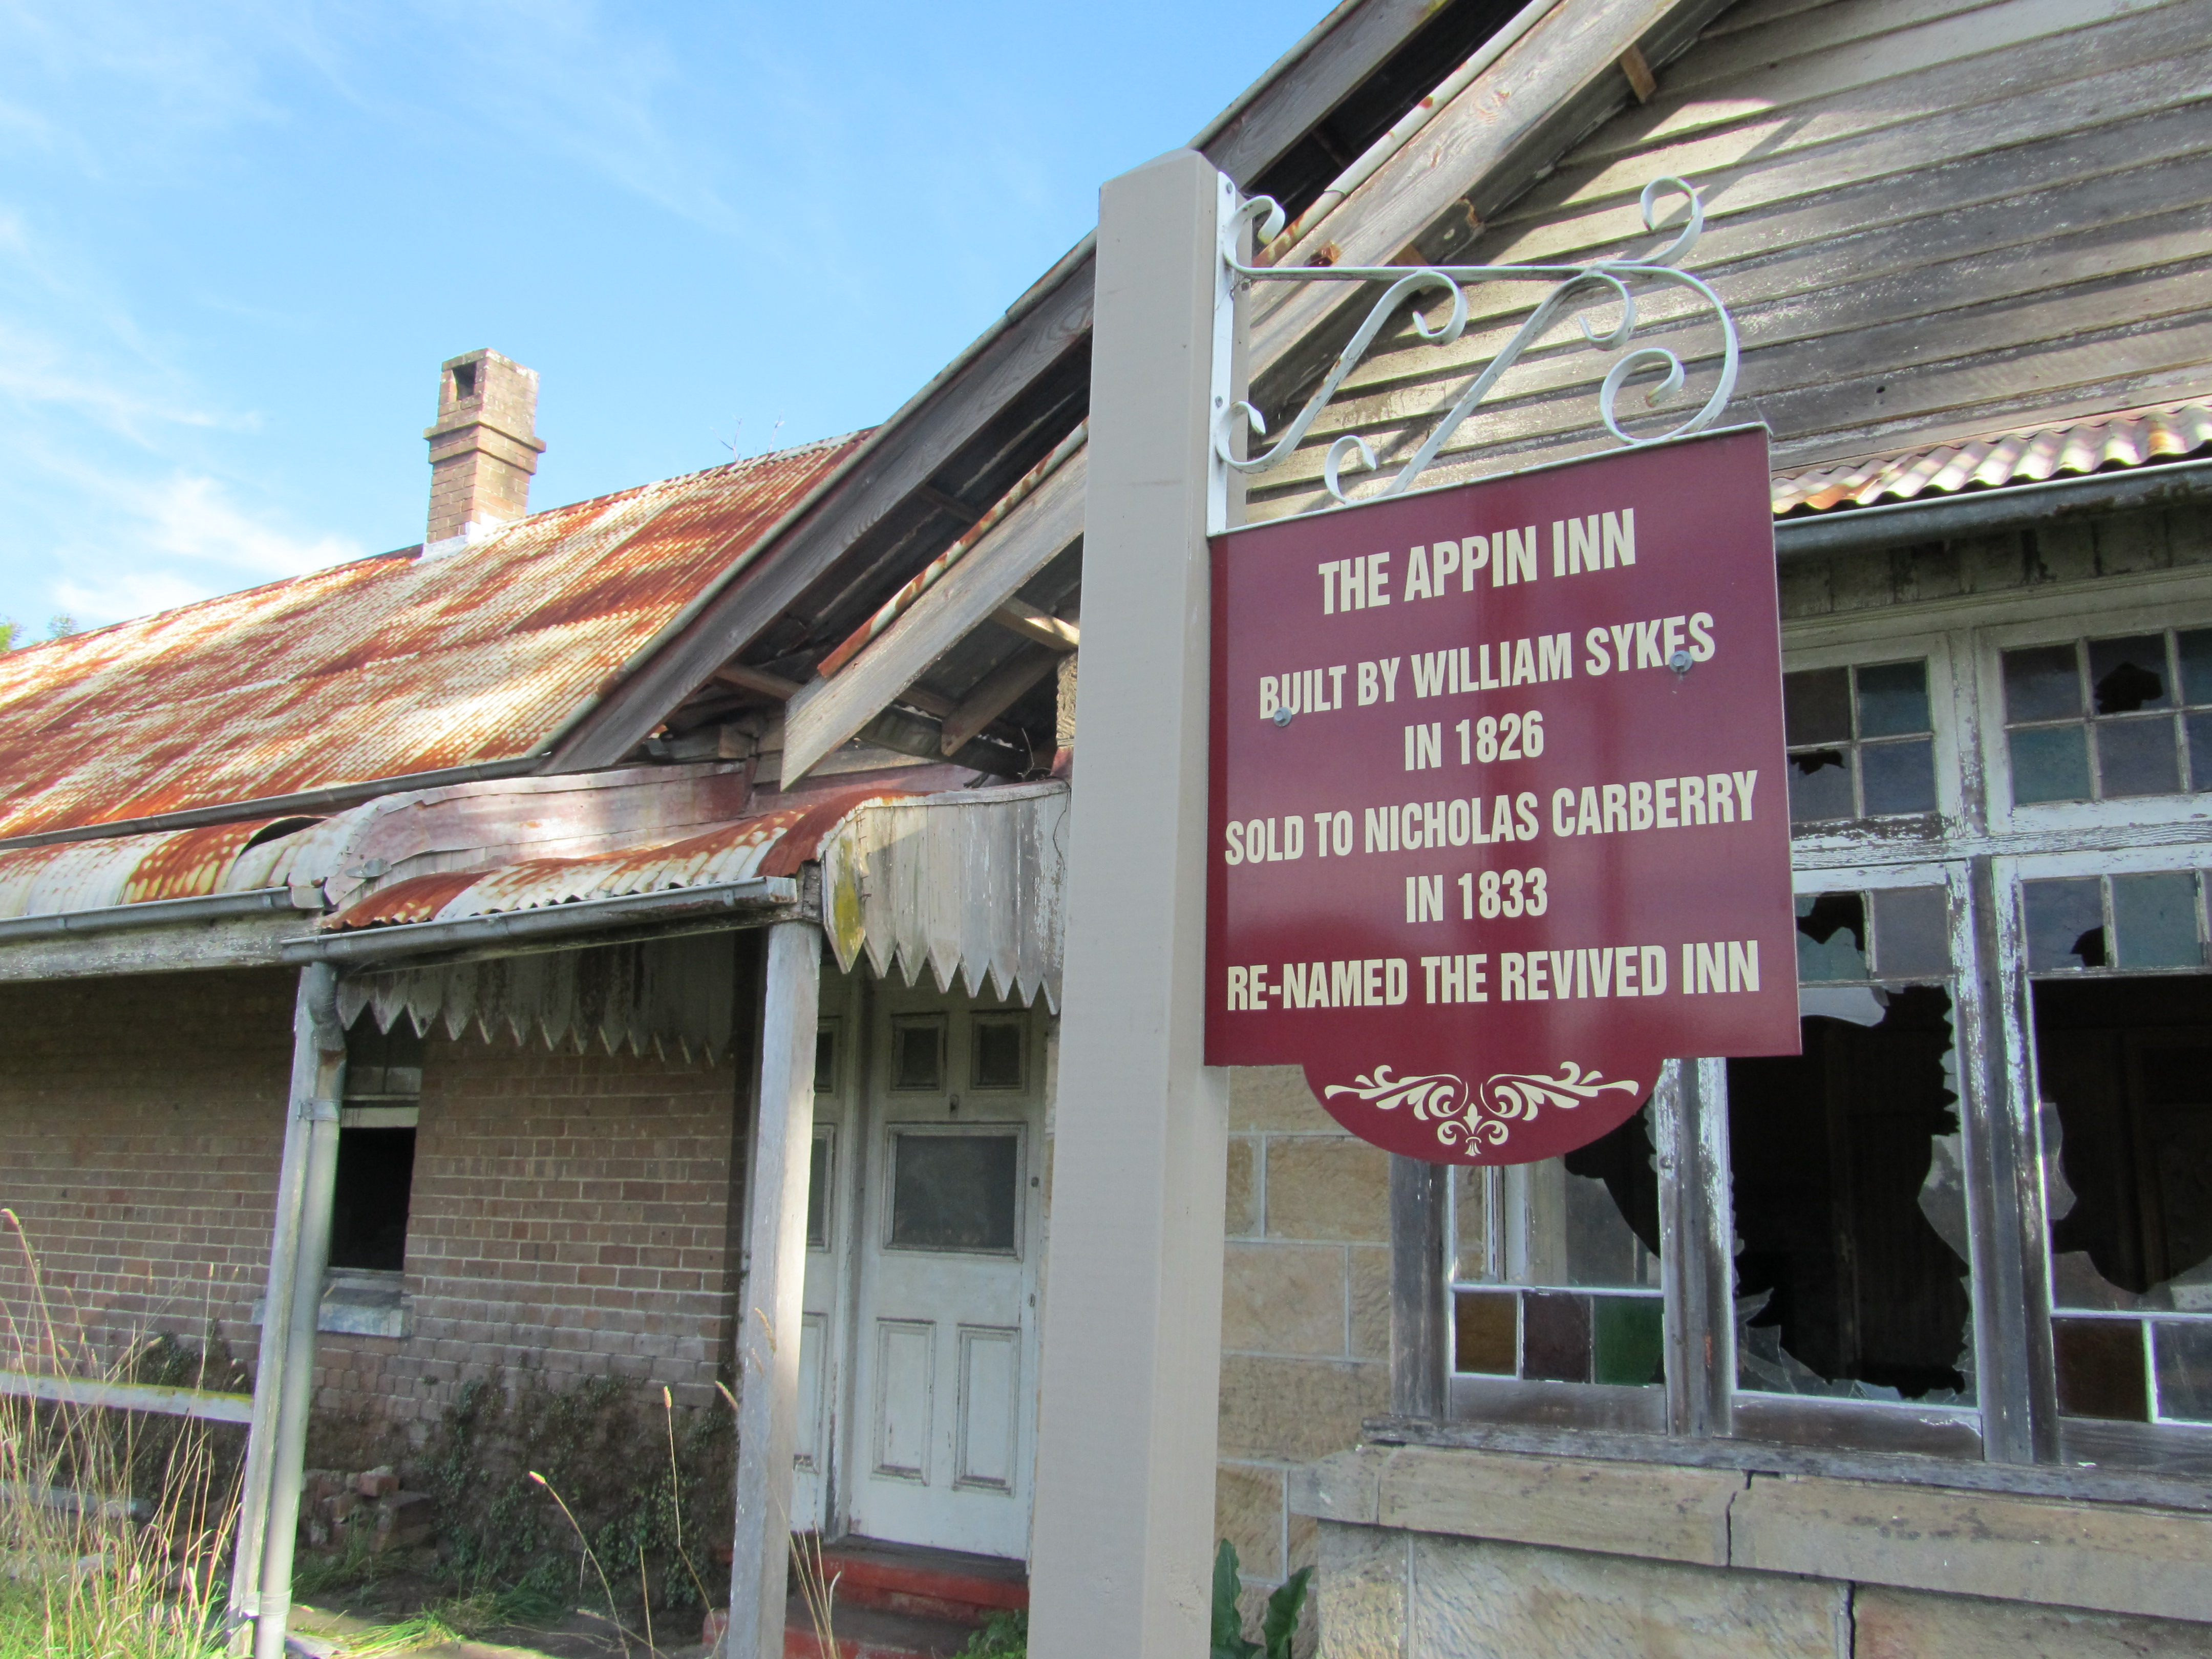 The Old Appin Inn